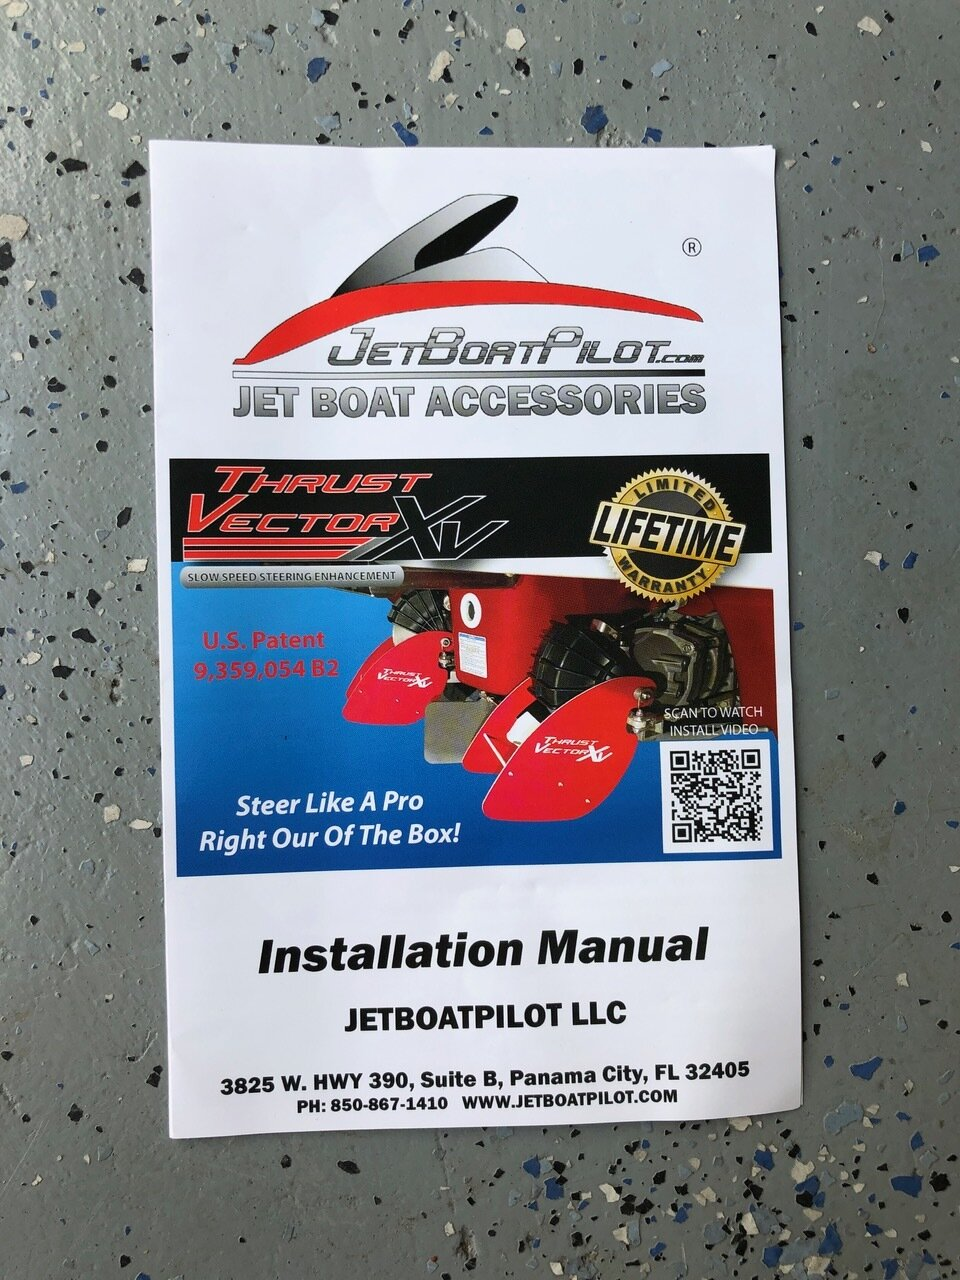 Close-Up of JetBoatPilot Thrust Vector XV Instruction Manual (Front)